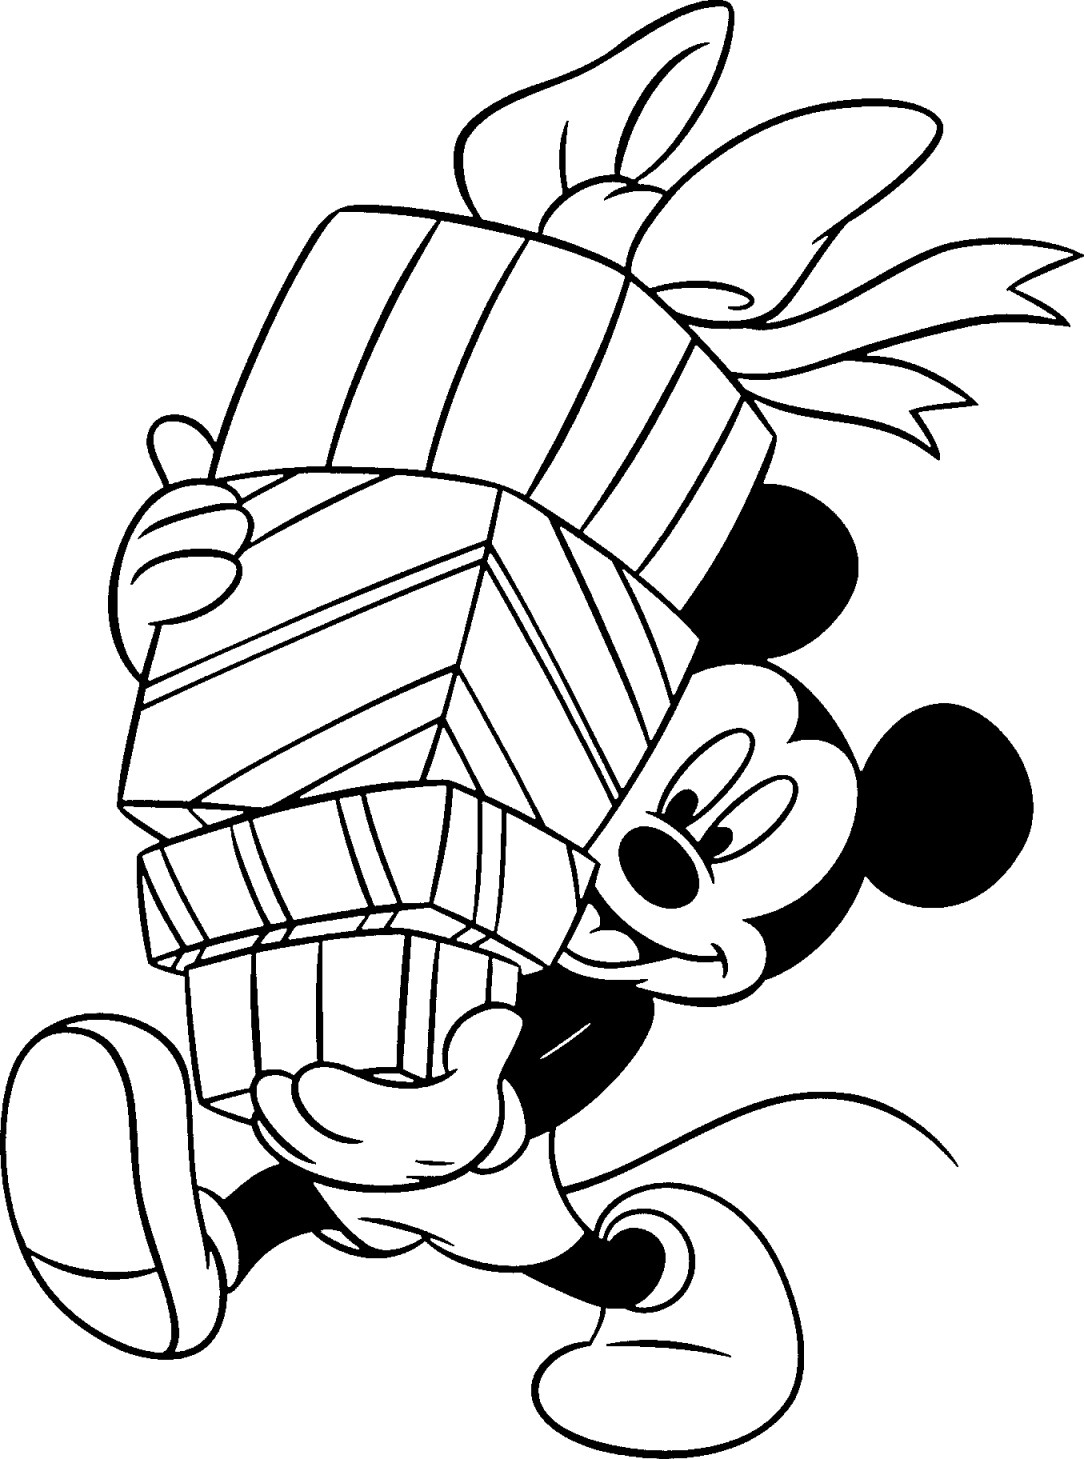 mickey mouse pictures to colour for free mickey mouse tell something coloring page free mickey mickey free pictures to for mouse colour